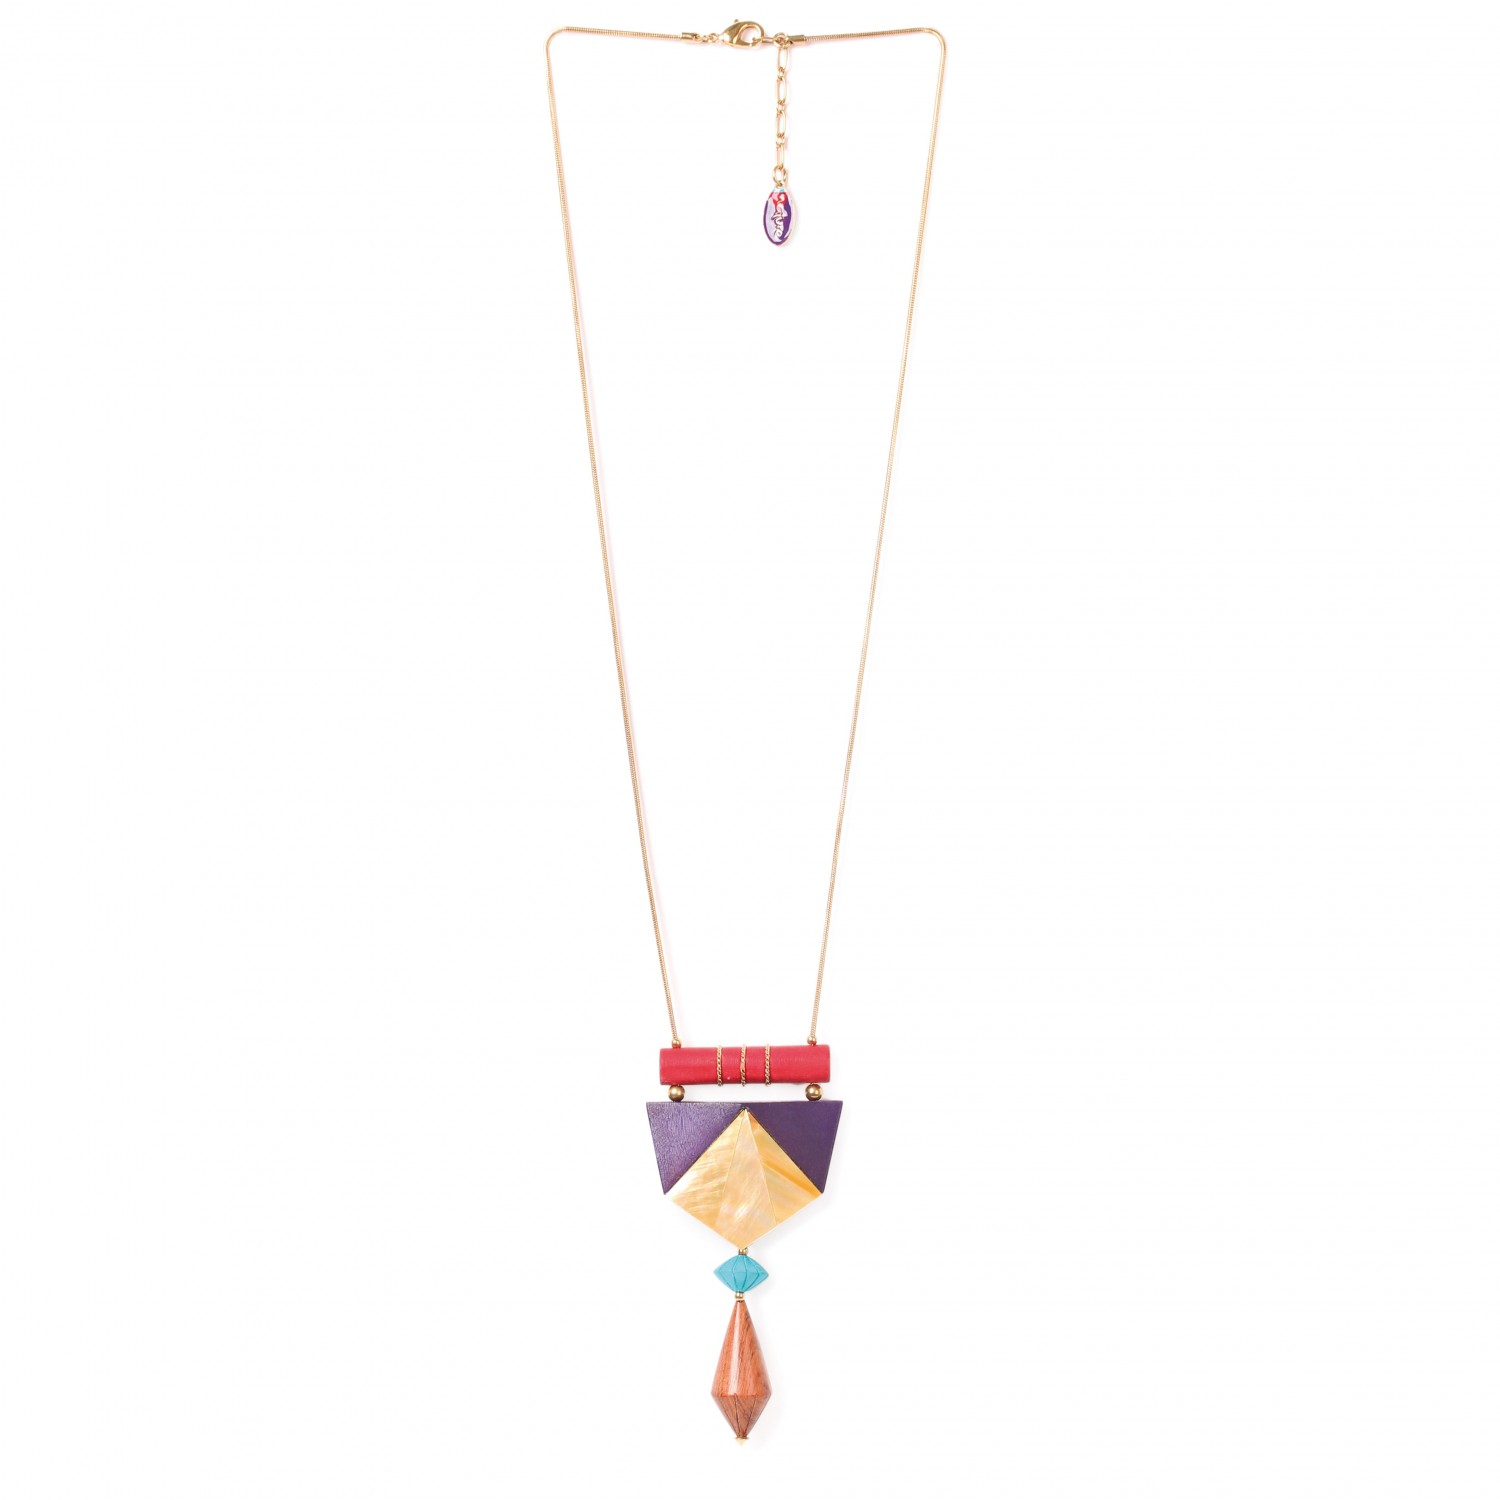 ARTY TOTEM collier long